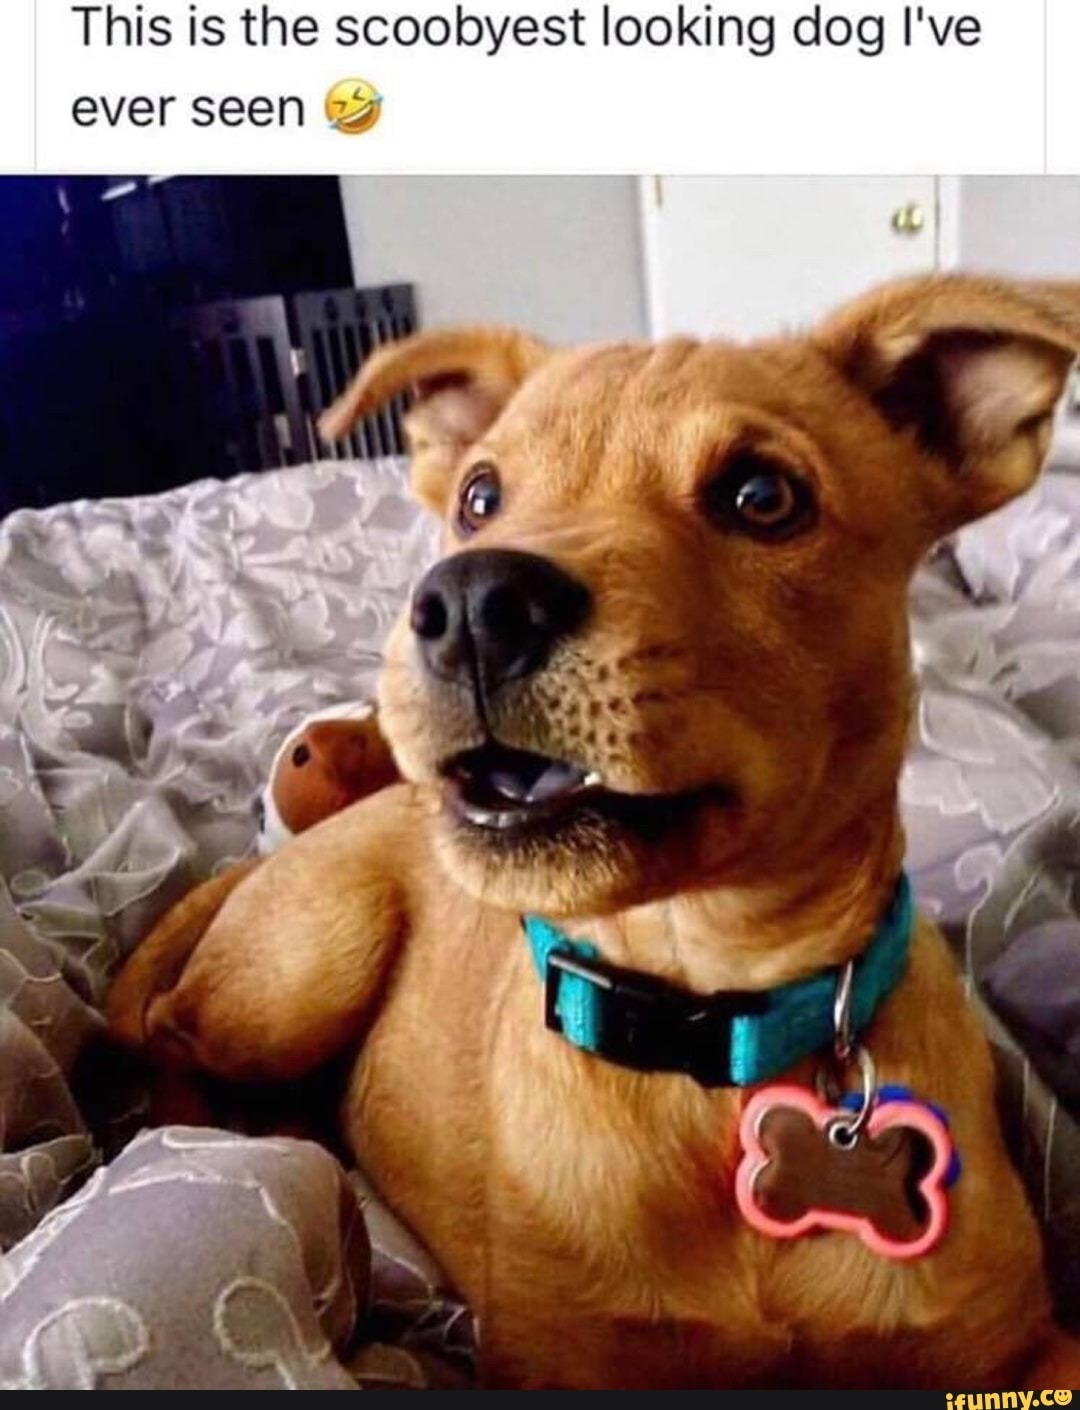 Scooby door looking doggo - meme